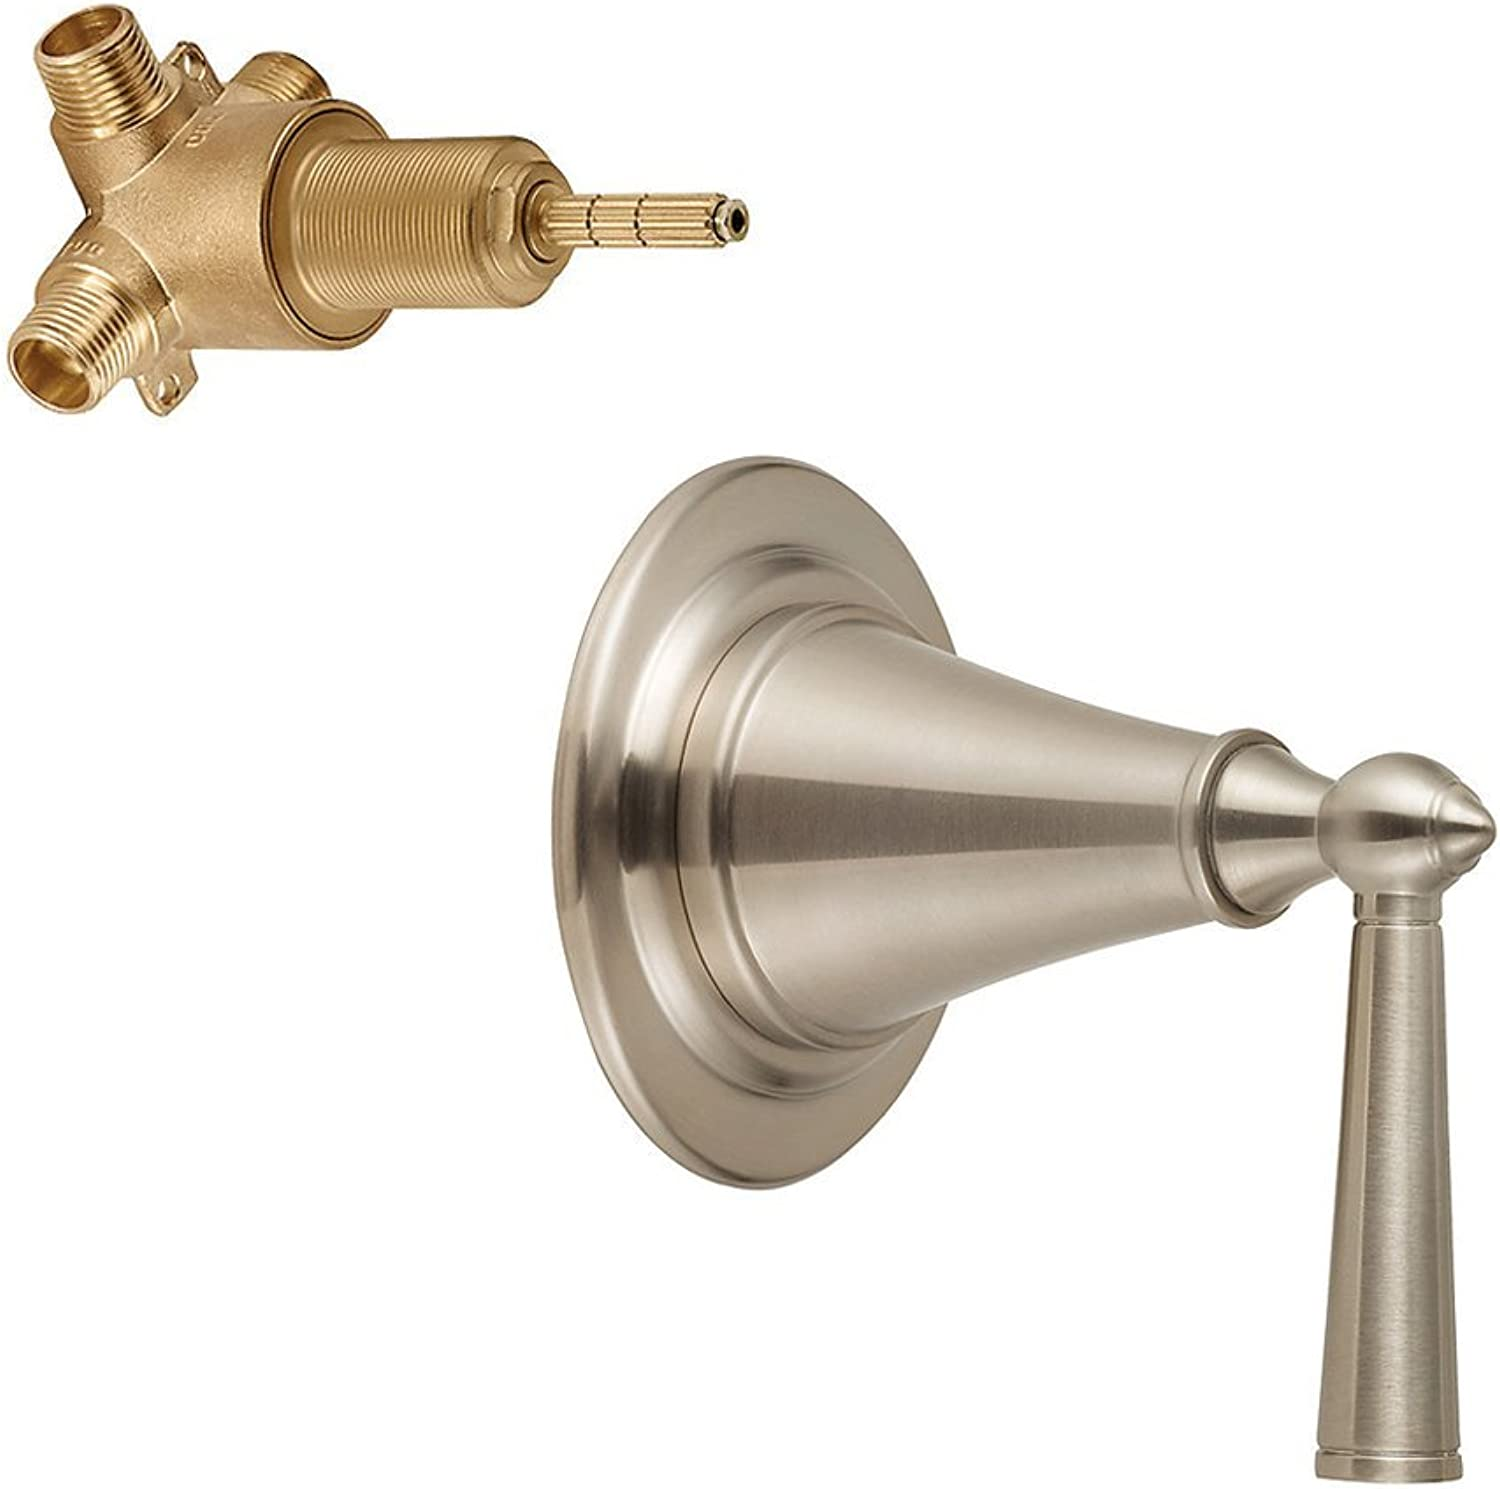 Pfister K016GL0-2WR-BN Saxton Digreener Trim with 2-Way Rough Valve, Brushed Nickel